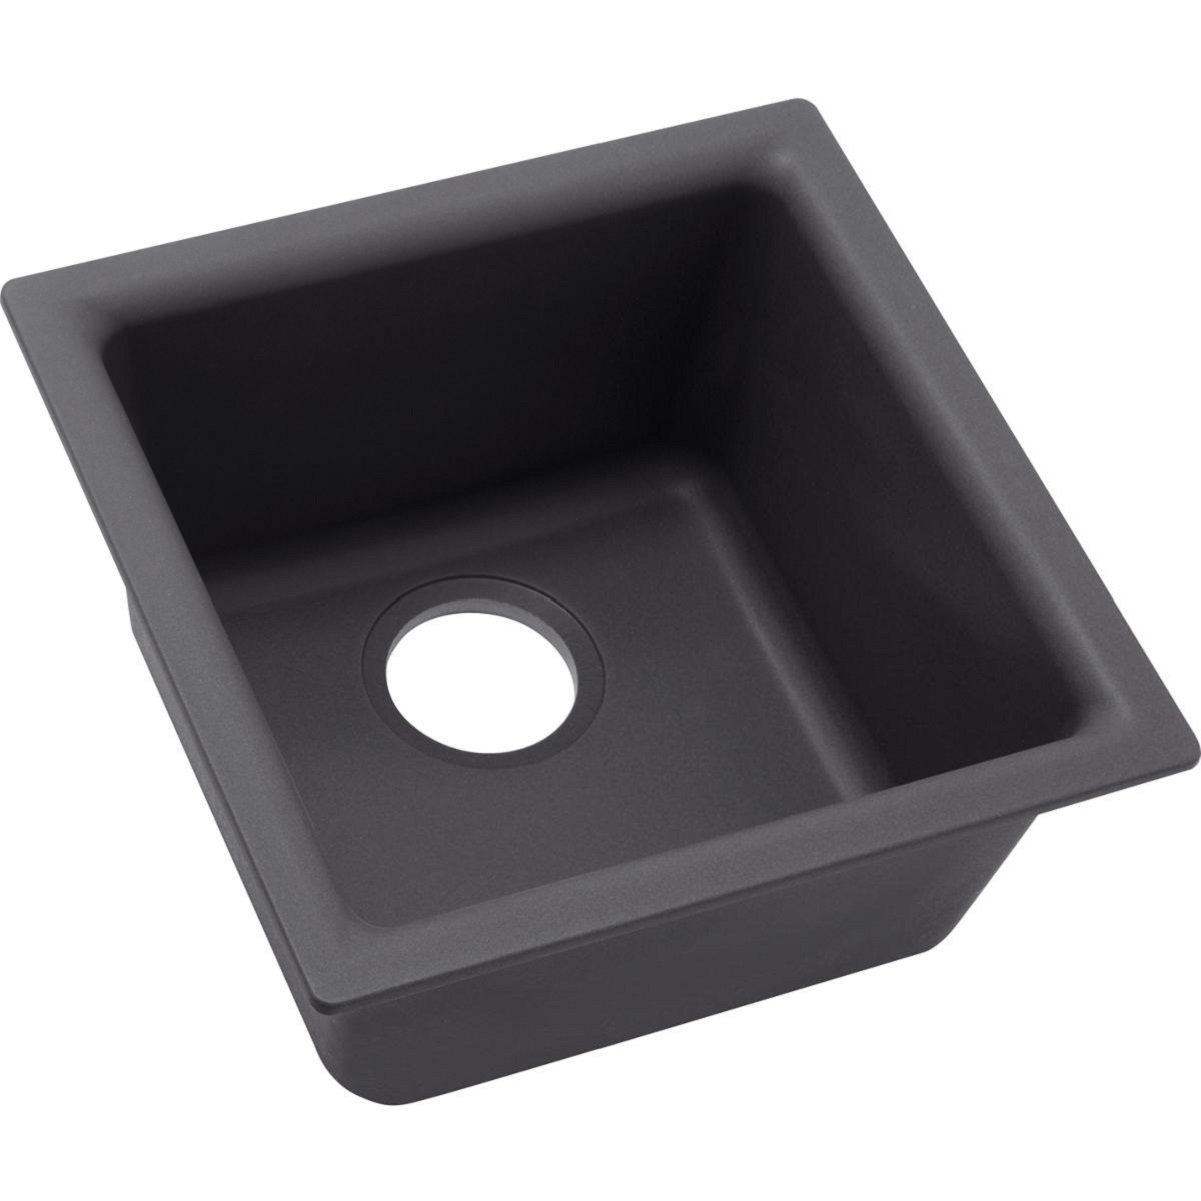 Elkay Quartz Luxe ELX1616CH0 Charcoal Single Bowl Dual Mount Bar Sink